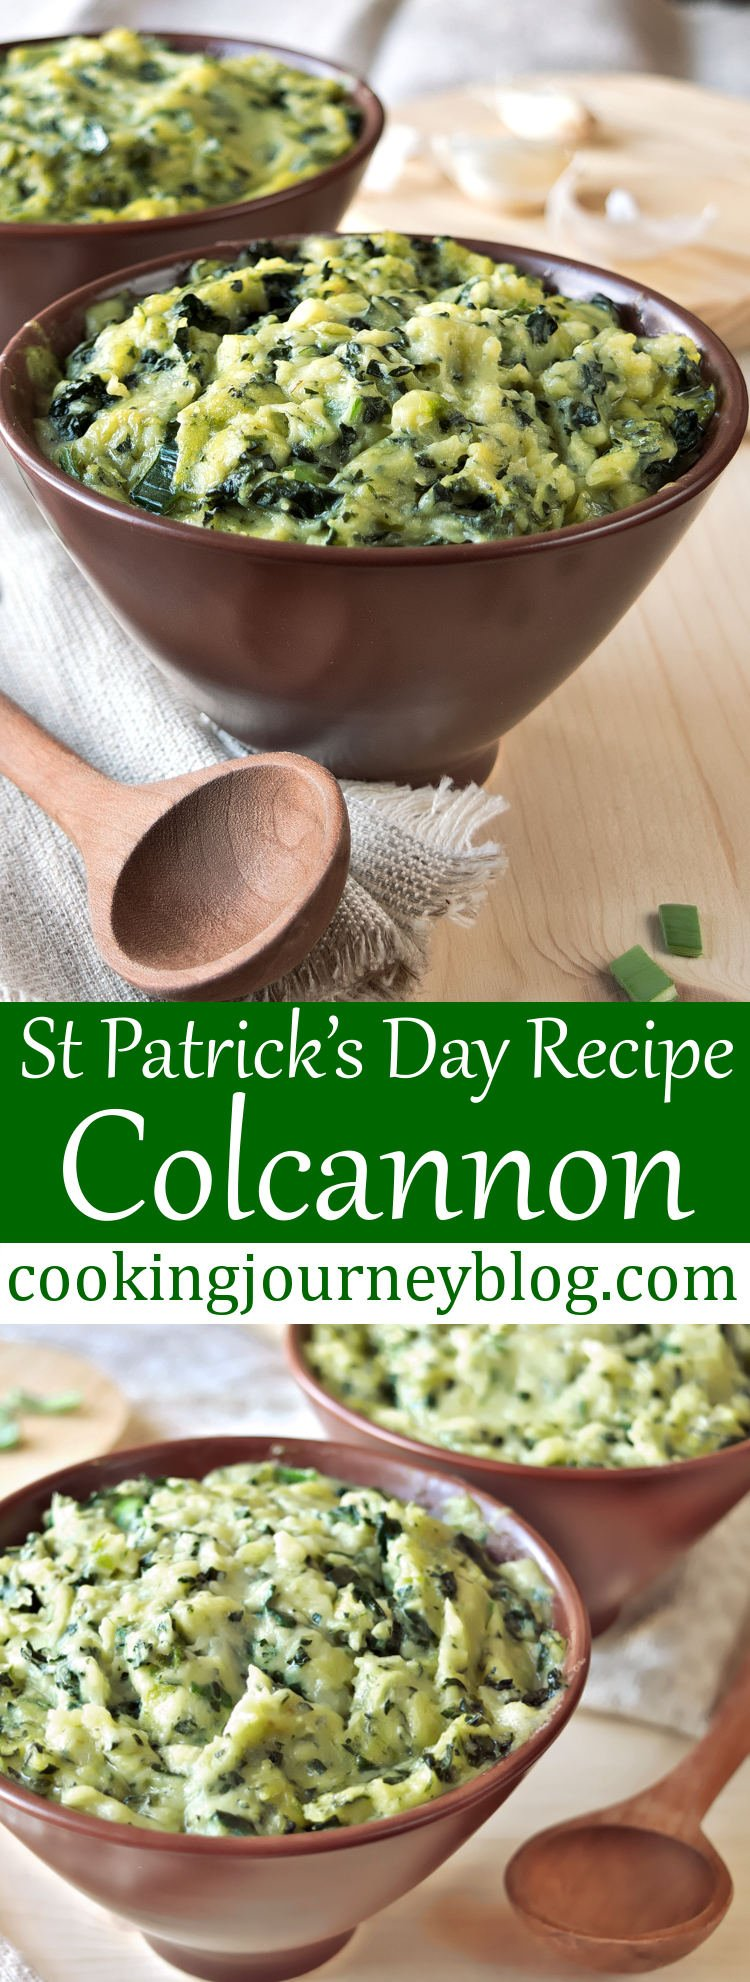 Colcannon is one of easy Irish recipes I wanted to try for a long time. It turned out best mashed potatoes I ever had! Simple mashed potatoes with sauteed kale and garlic, great and filling side dish. Moreover, colcannon is ultimate St Patrick's day food!